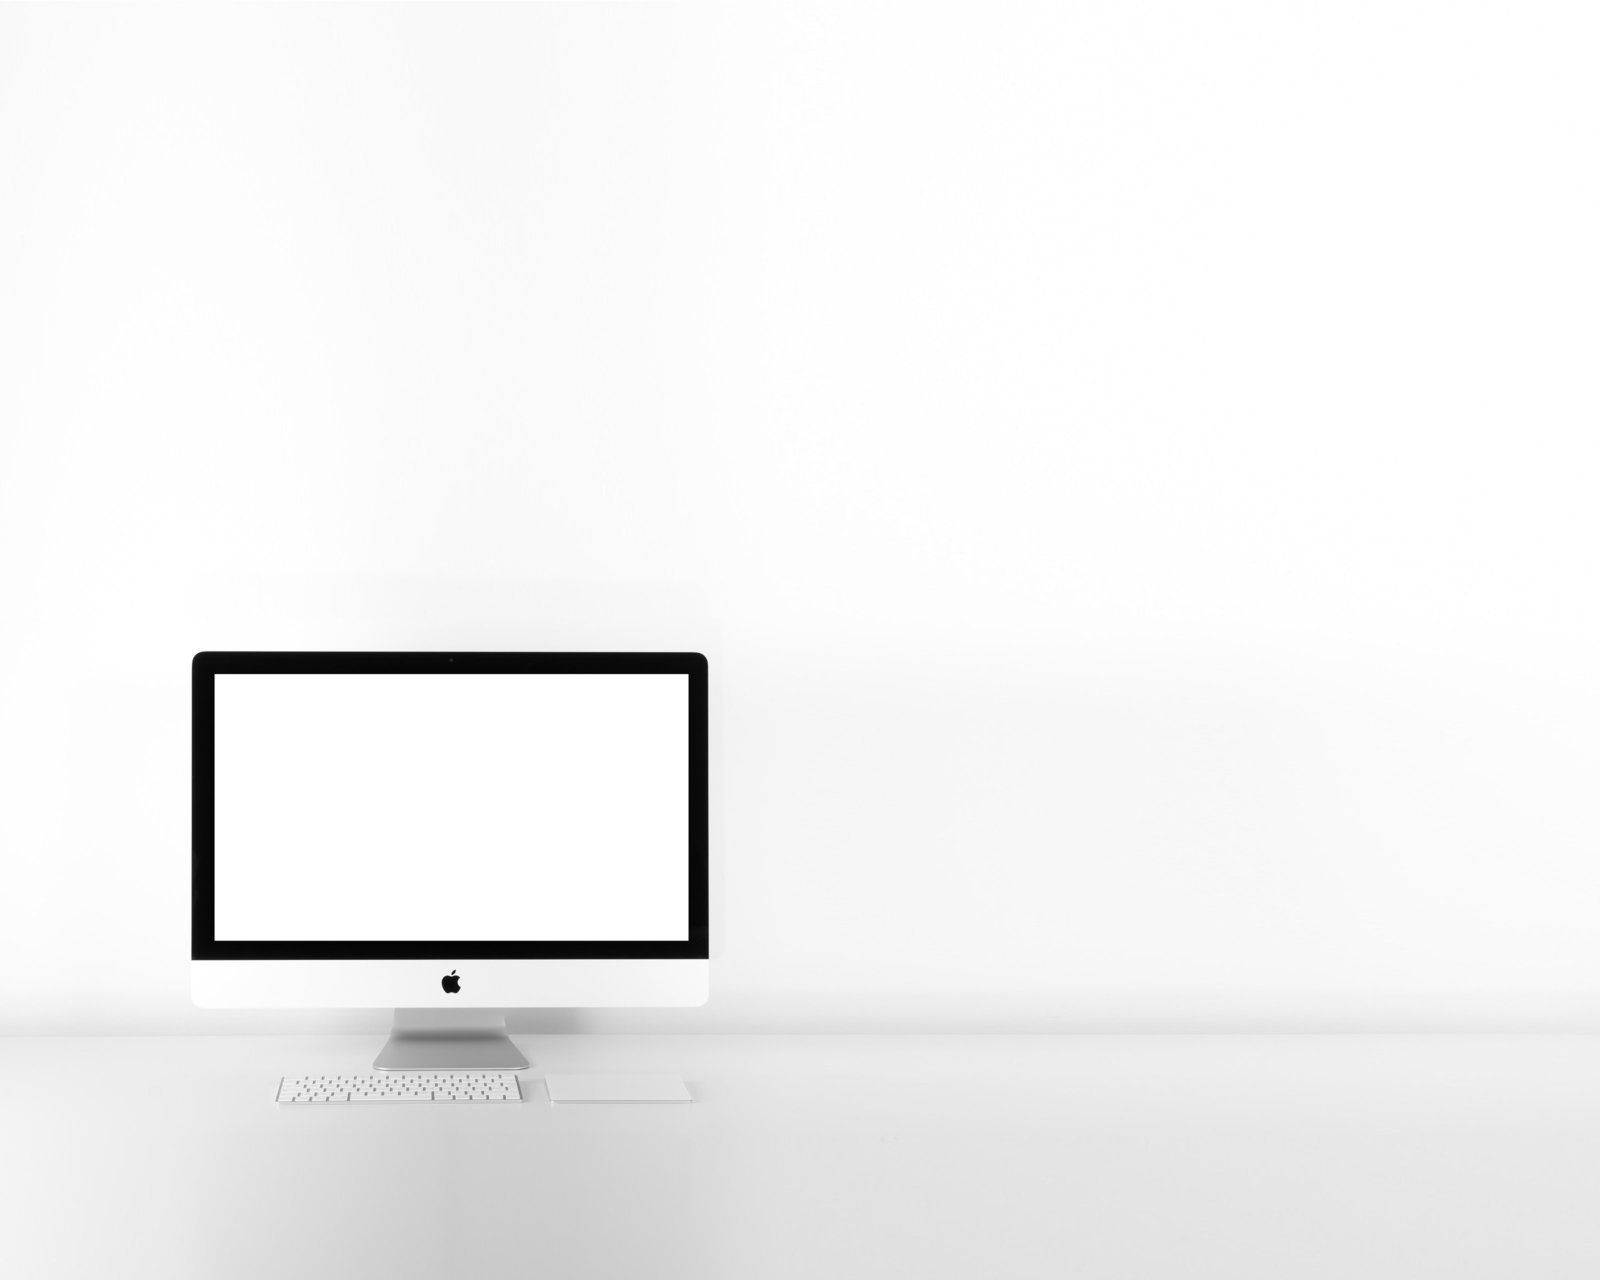 imac extended background